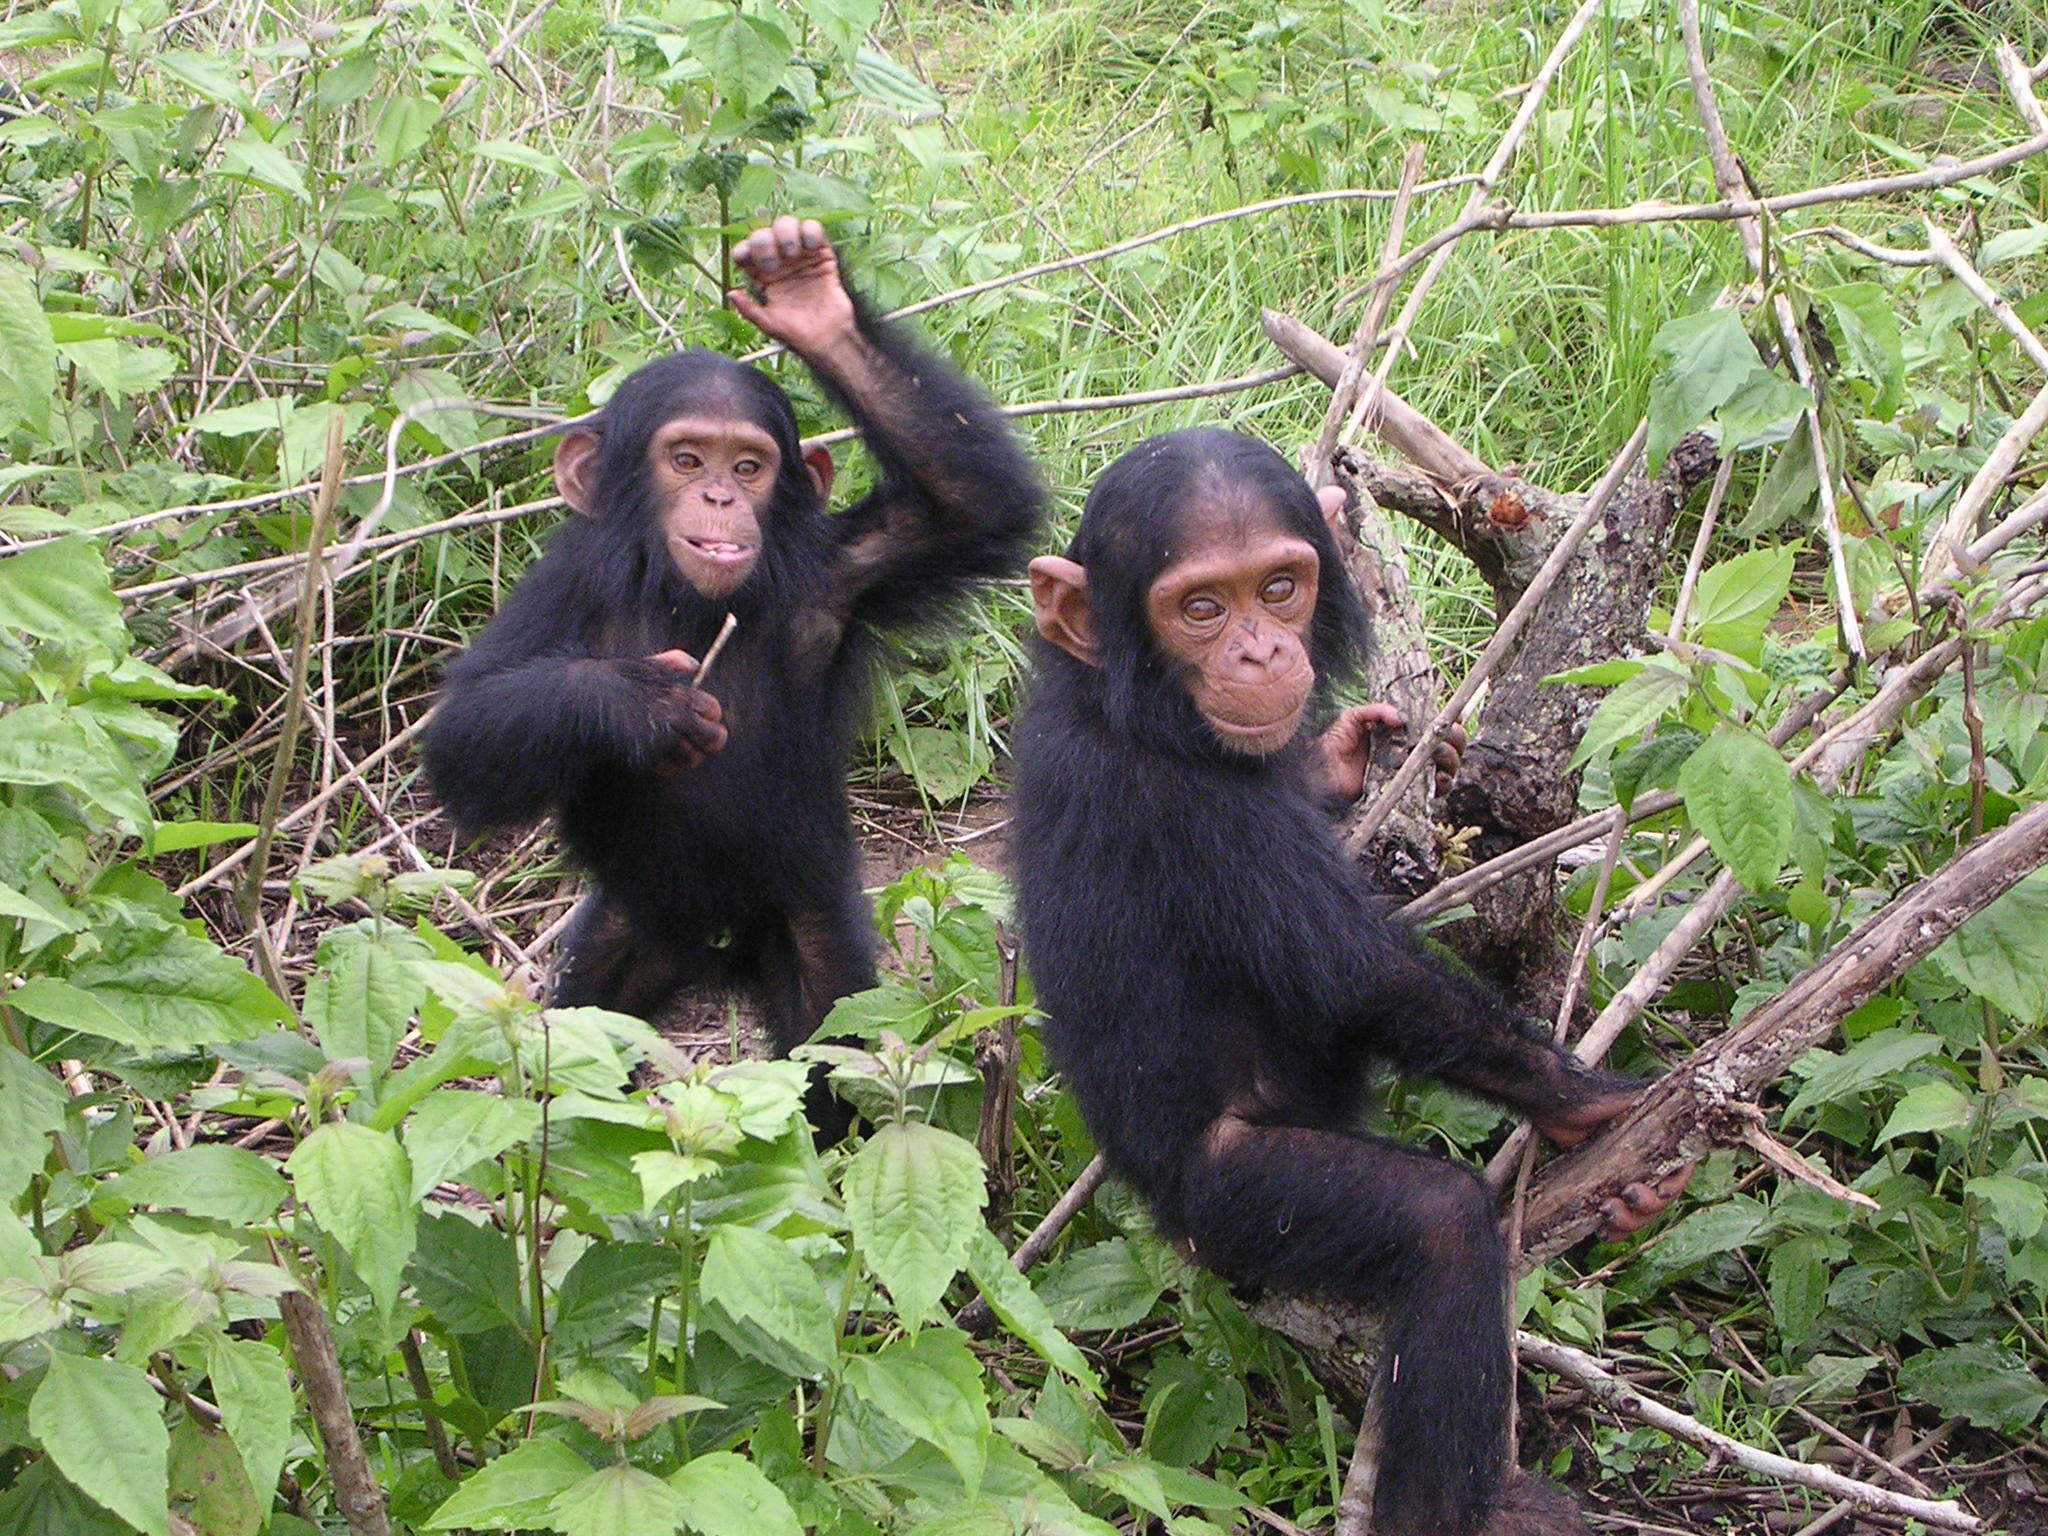 These chimps don't care about your playlist.